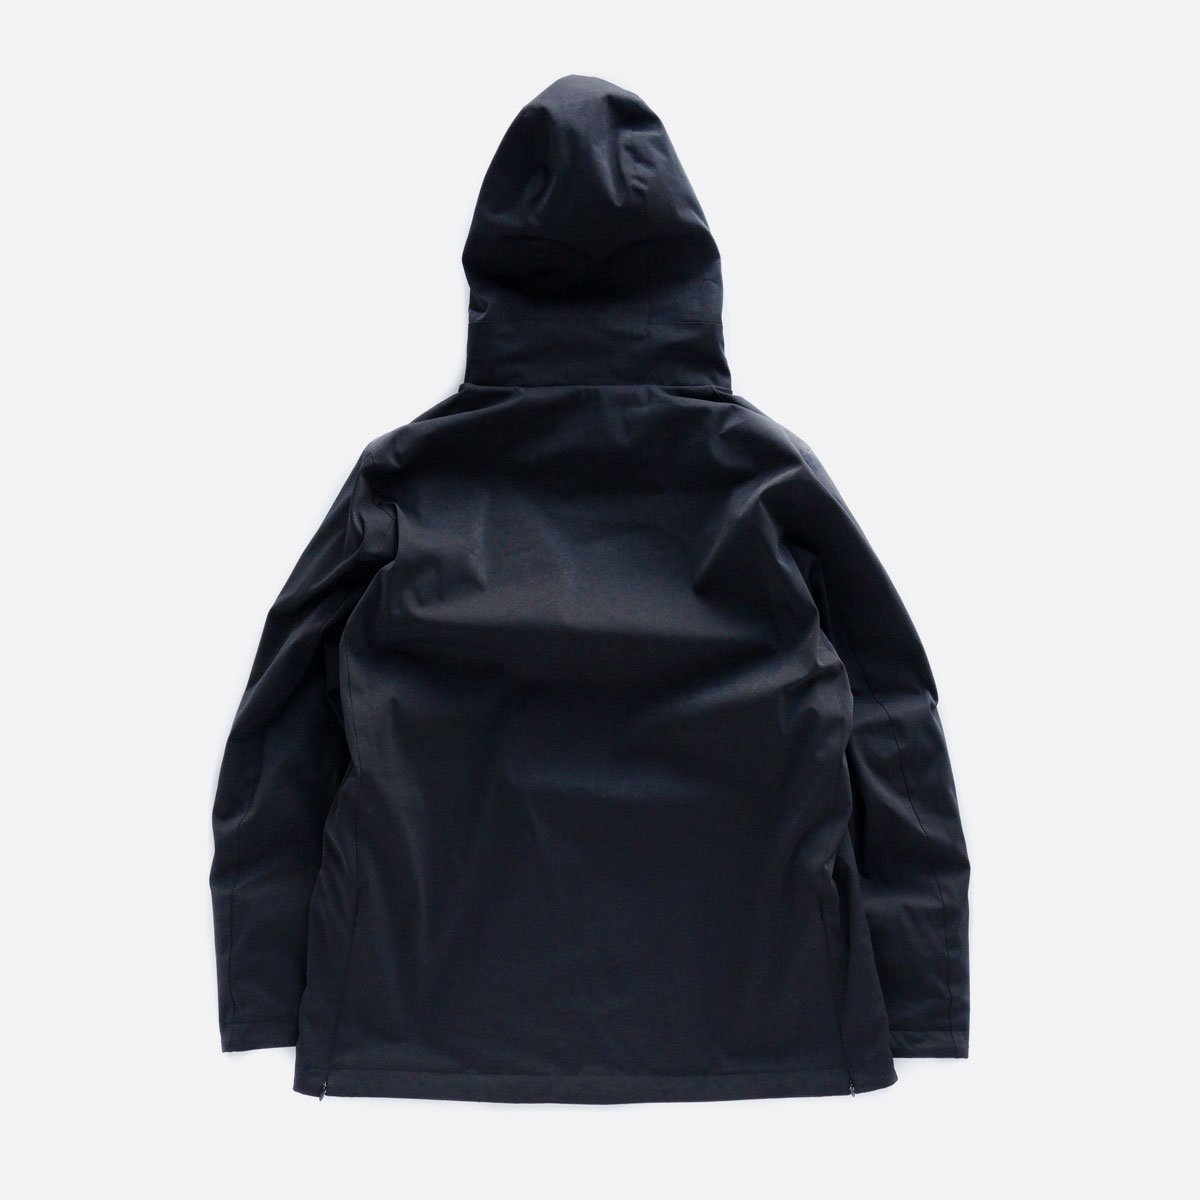 -20AW先行受注- HIGHDENSITY MILICLOTH FOODIE JACKET 2